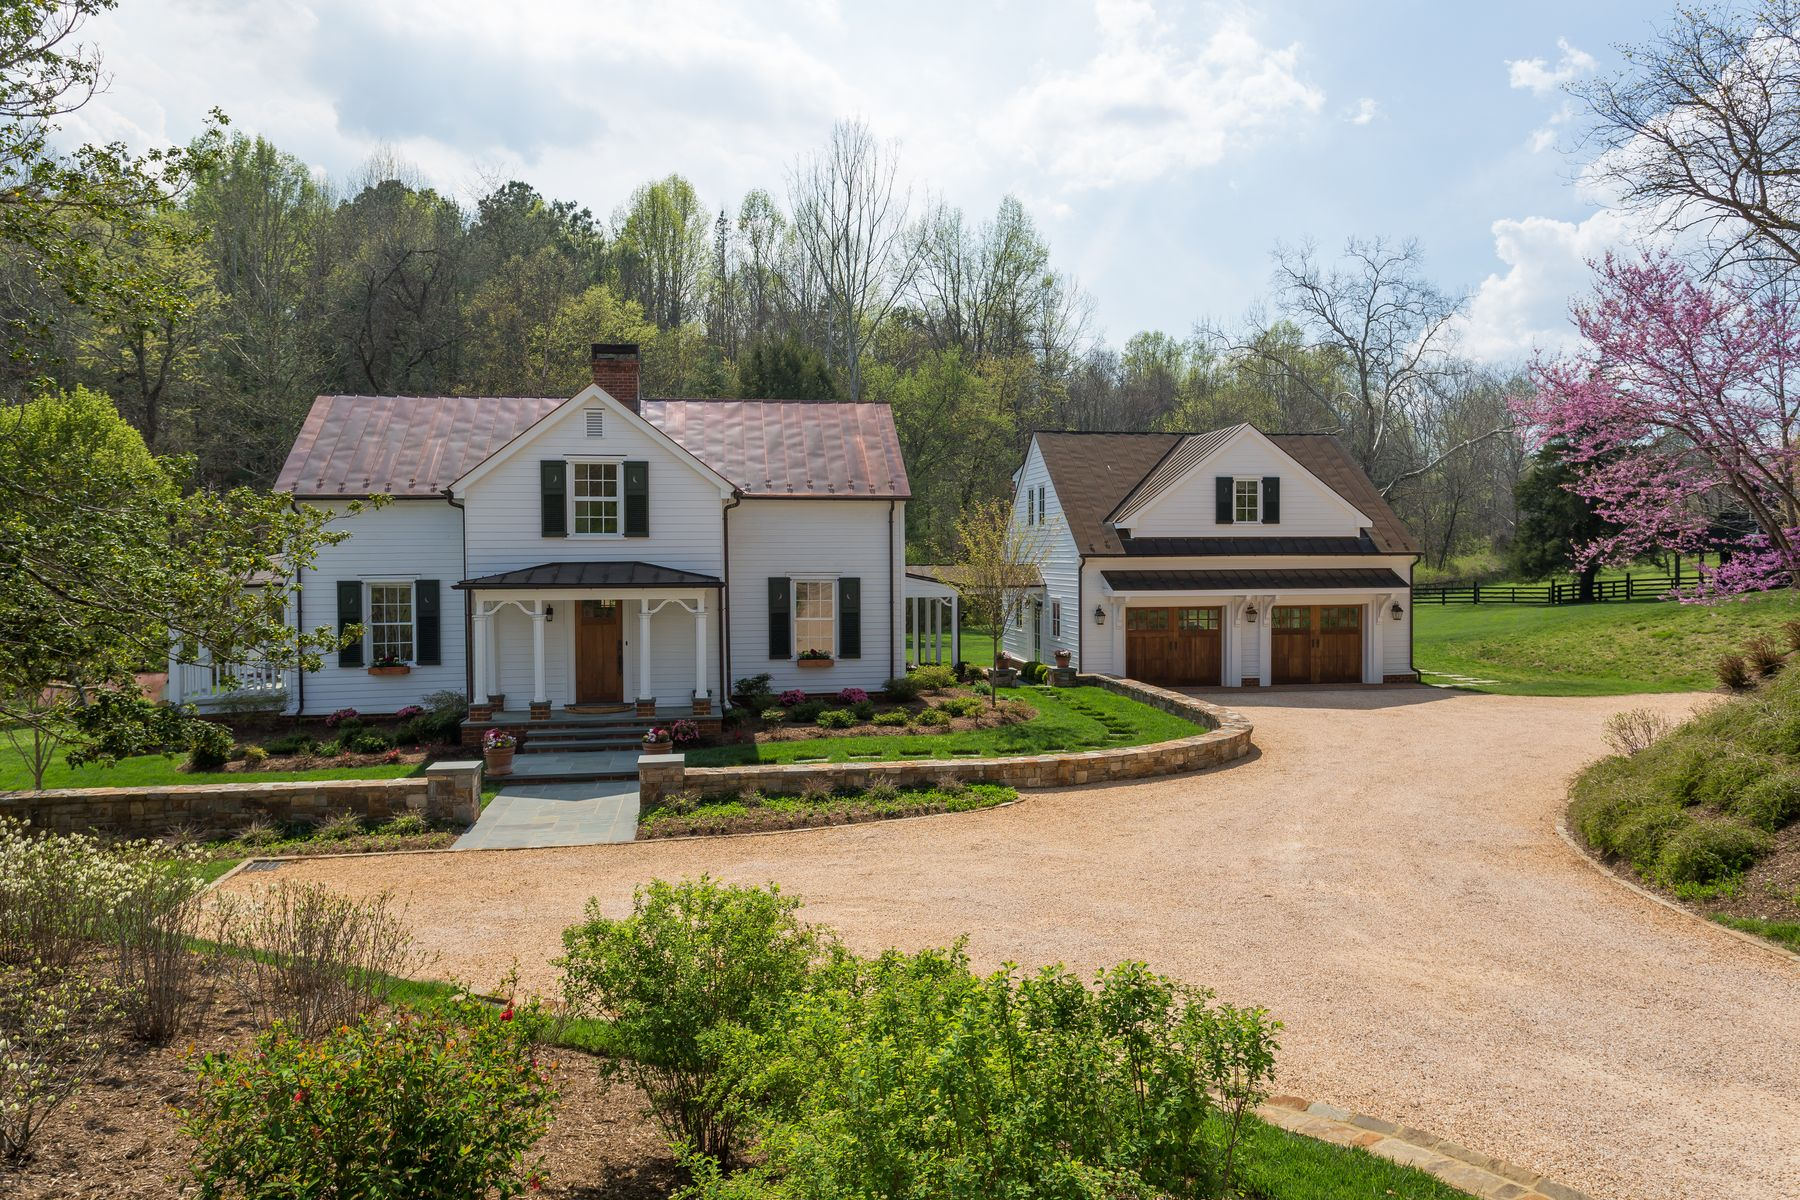 Single Family Home for Sale at 684 Ivy Depot Rd Charlottesville, Virginia, 22903 United States